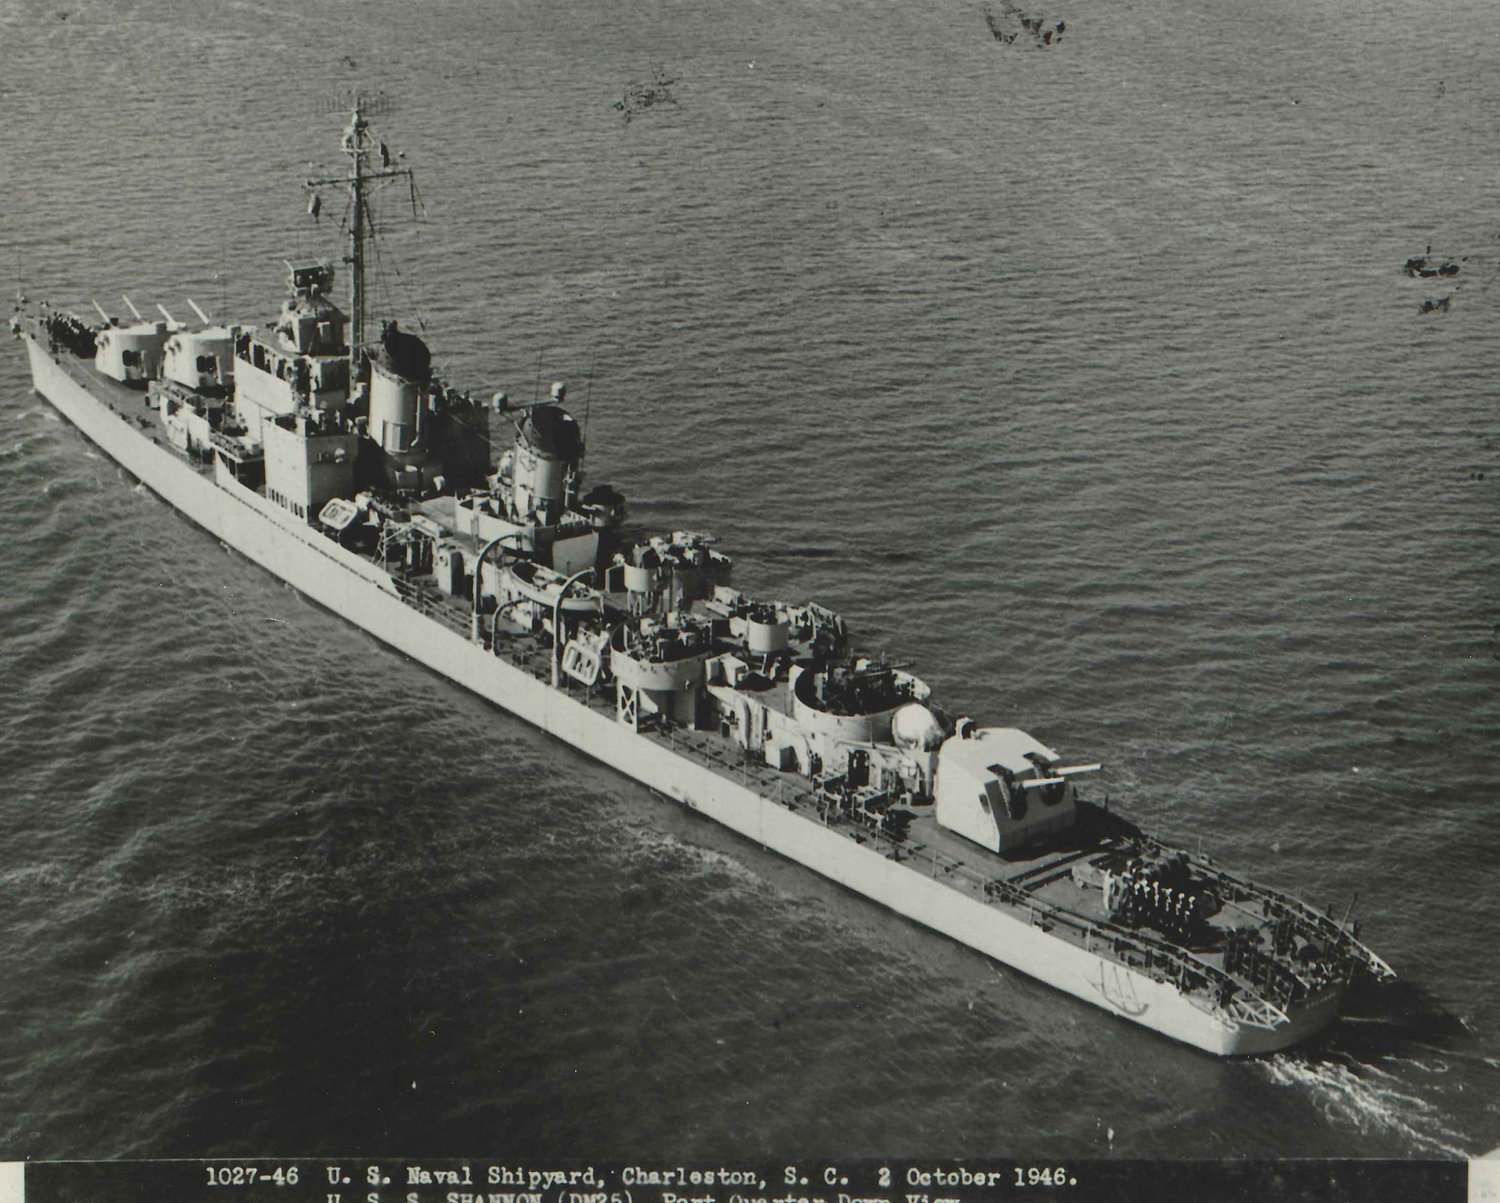 A ship Tom Mctigue served on, the U.S.S Shannon, in 1946.